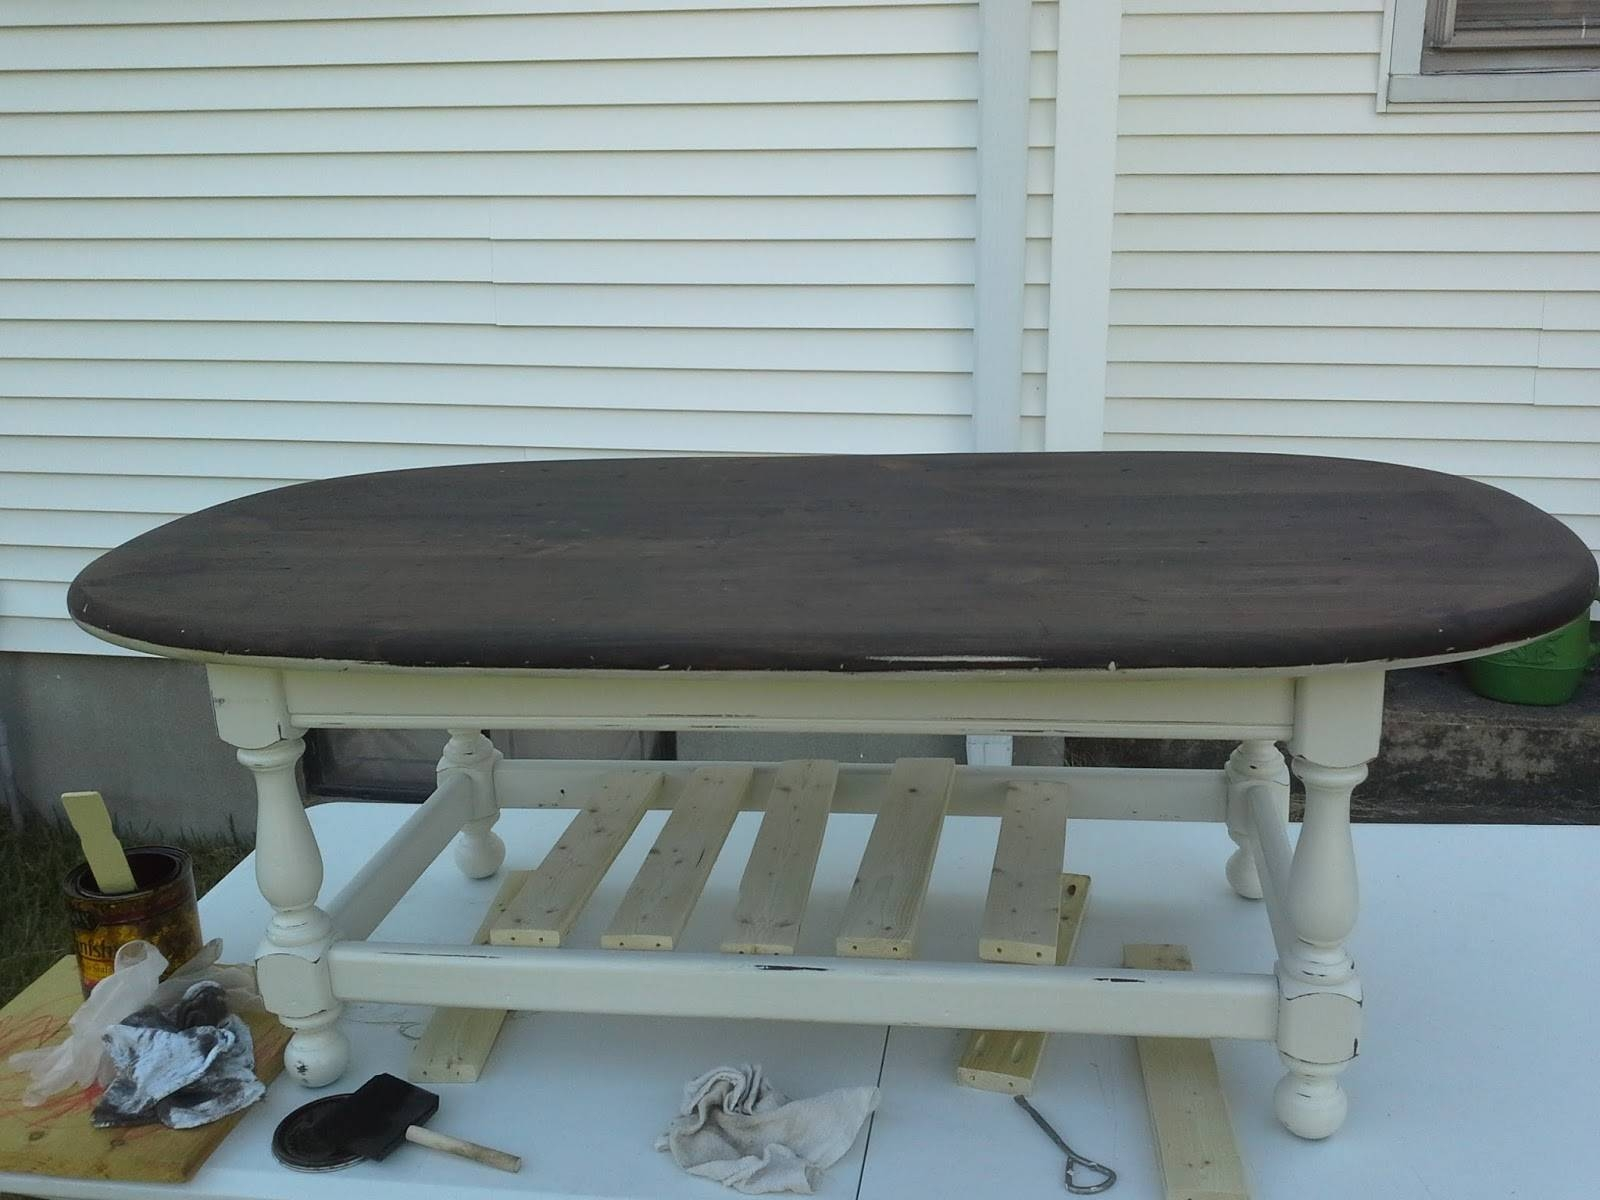 Lilly's Home Designs: Ethan Allen Coffee Table Redesign Within Jacobean Coffee Tables (View 8 of 15)